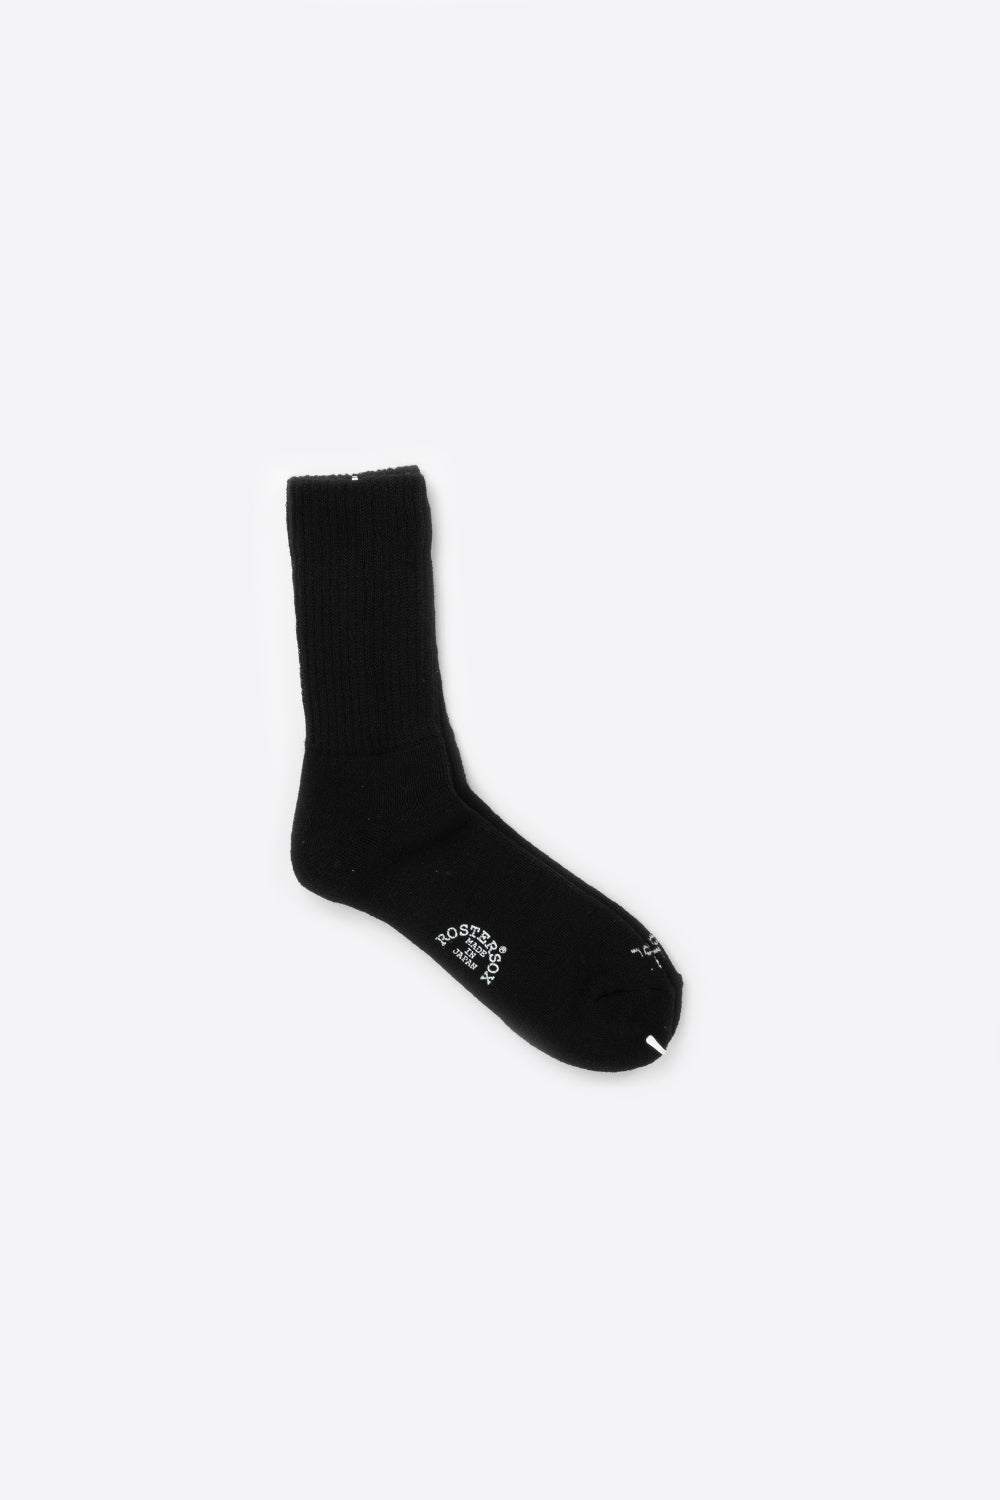 rostersox merino wool pile black front